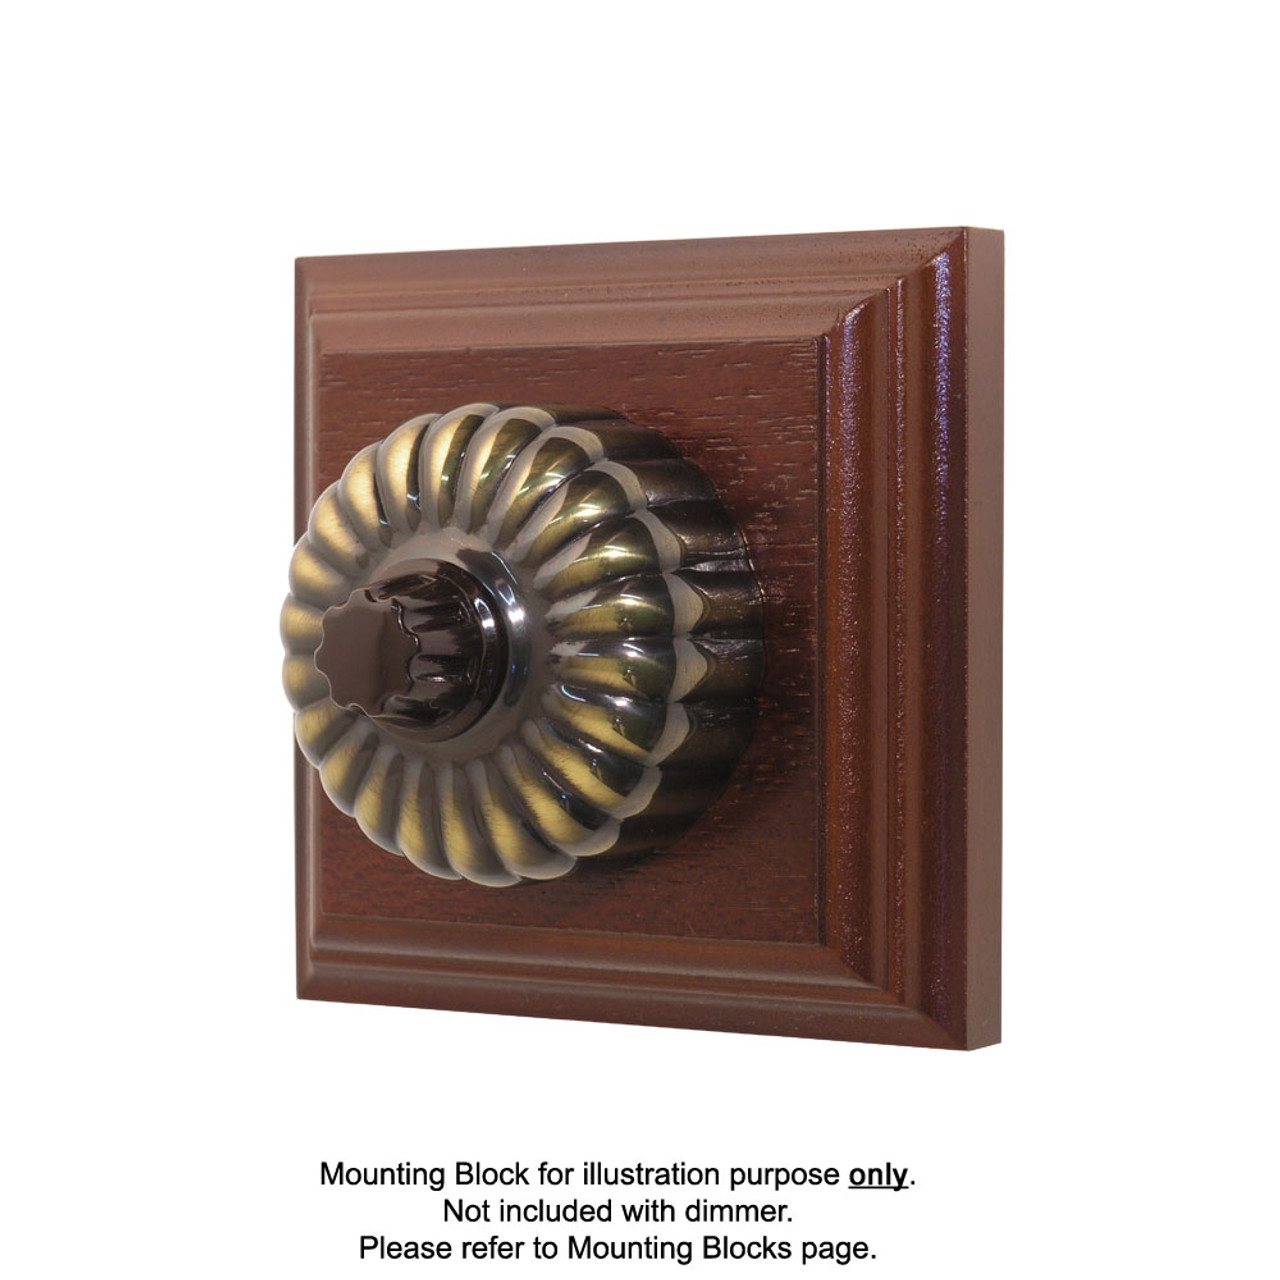 Heritage Clipsal Classic Fluted Universal Dimmer Fluted - Antique Brass